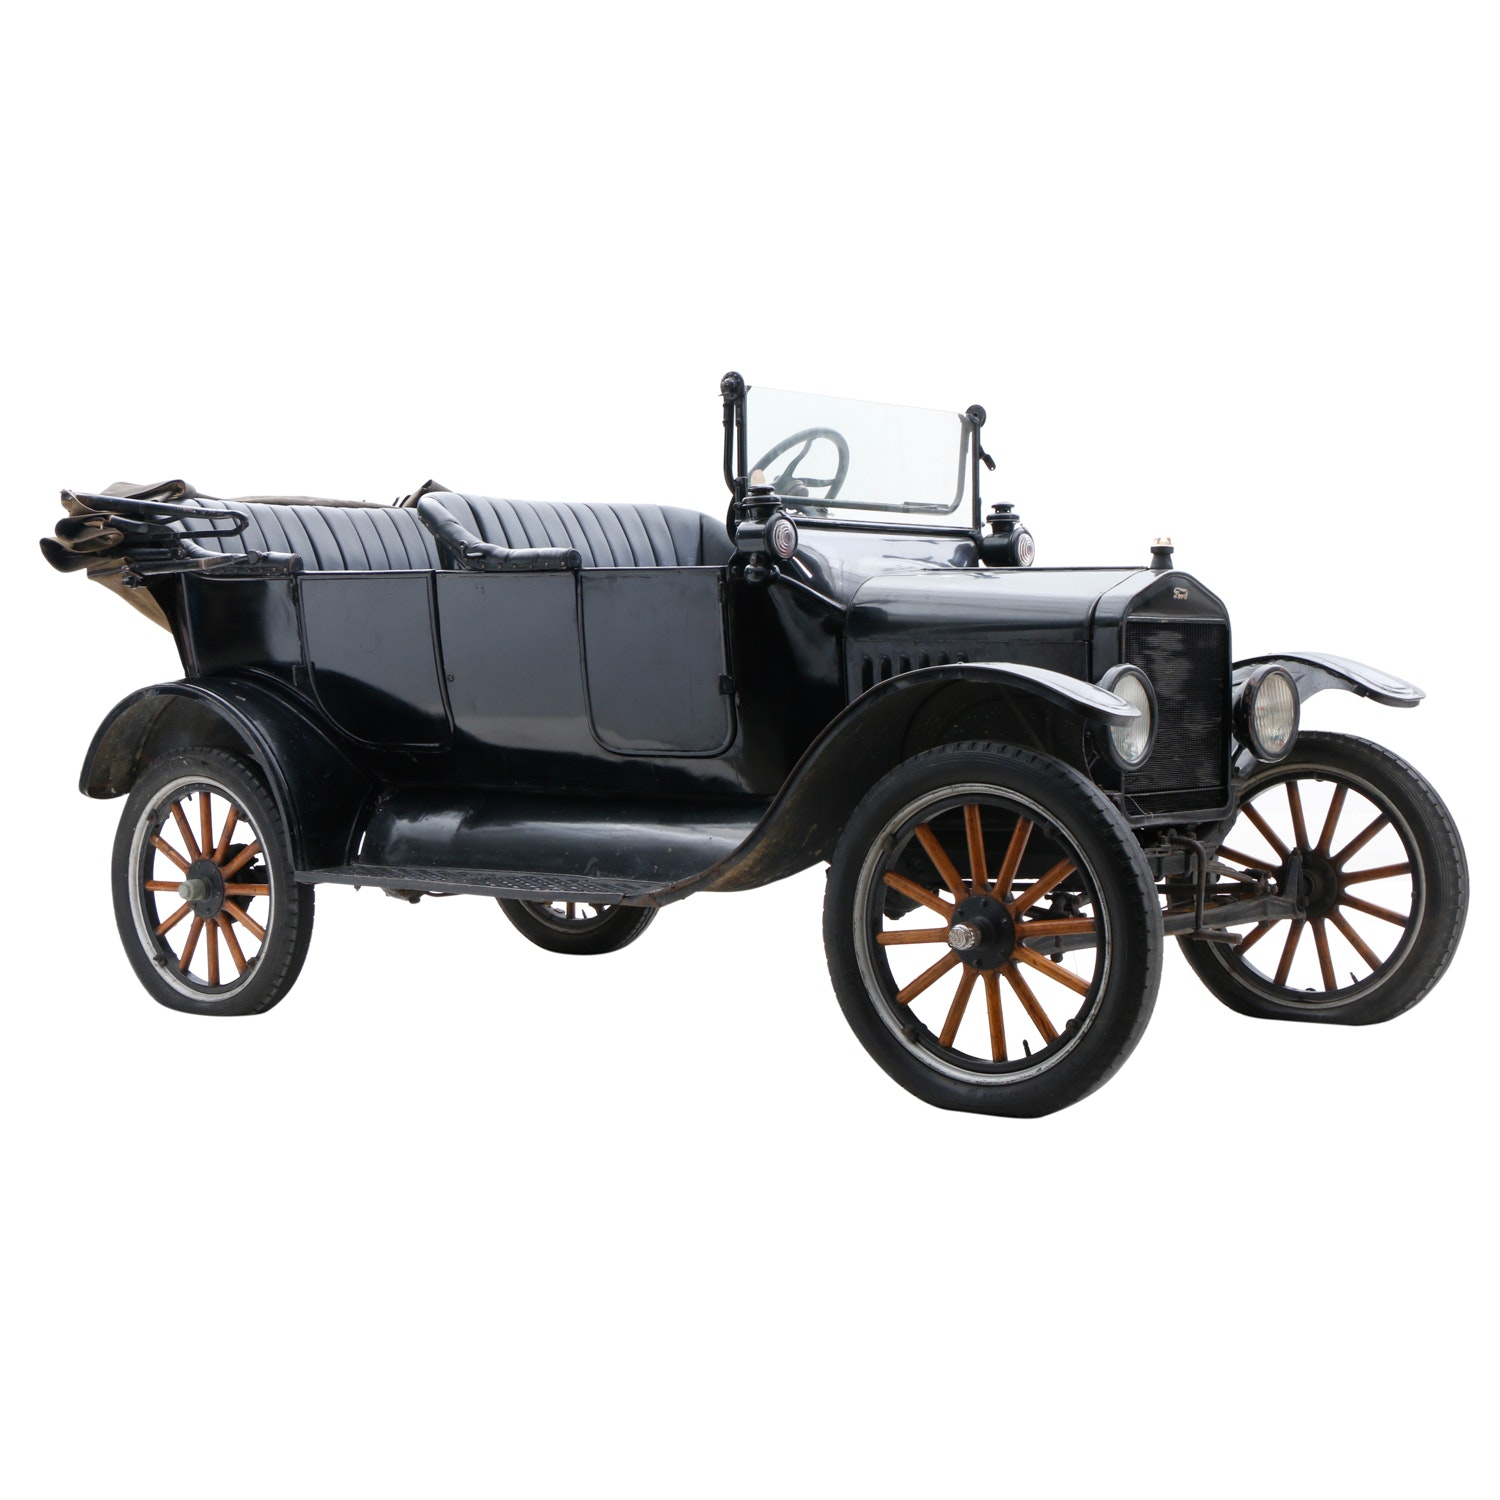 1920 Ford Model T Touring Car and Trailer